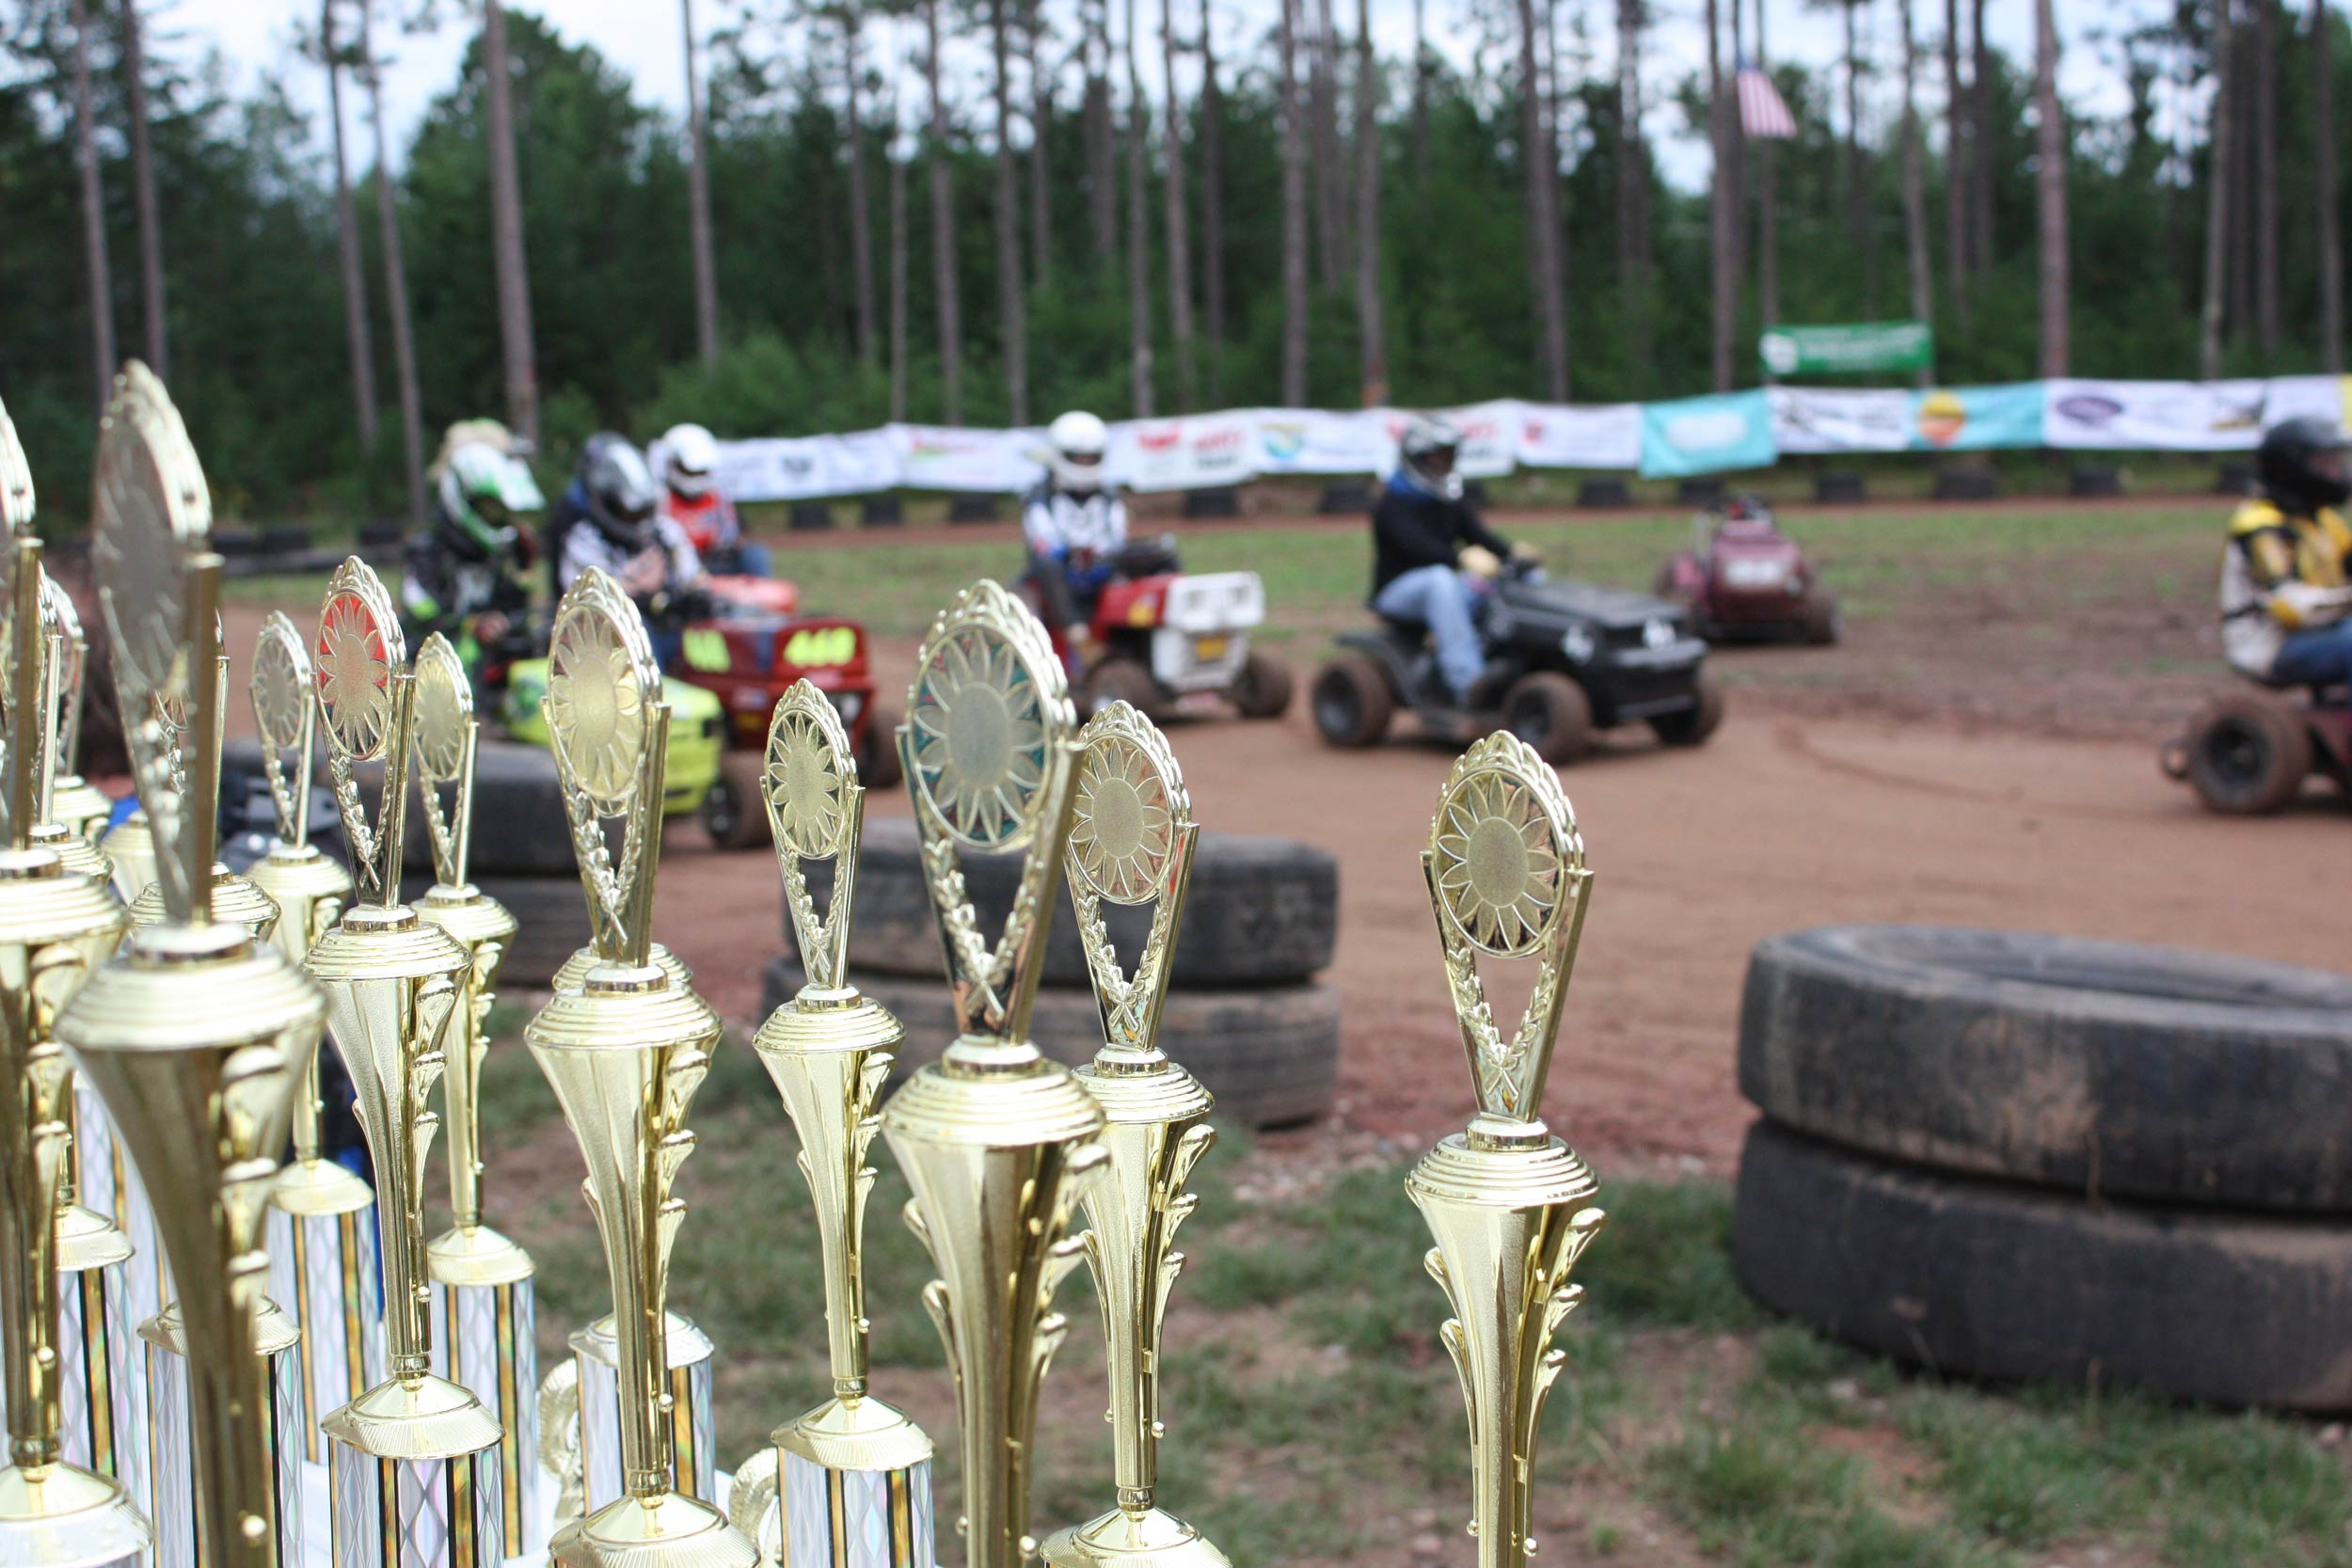 Wisconsin Lawn Mower Racing Trophies